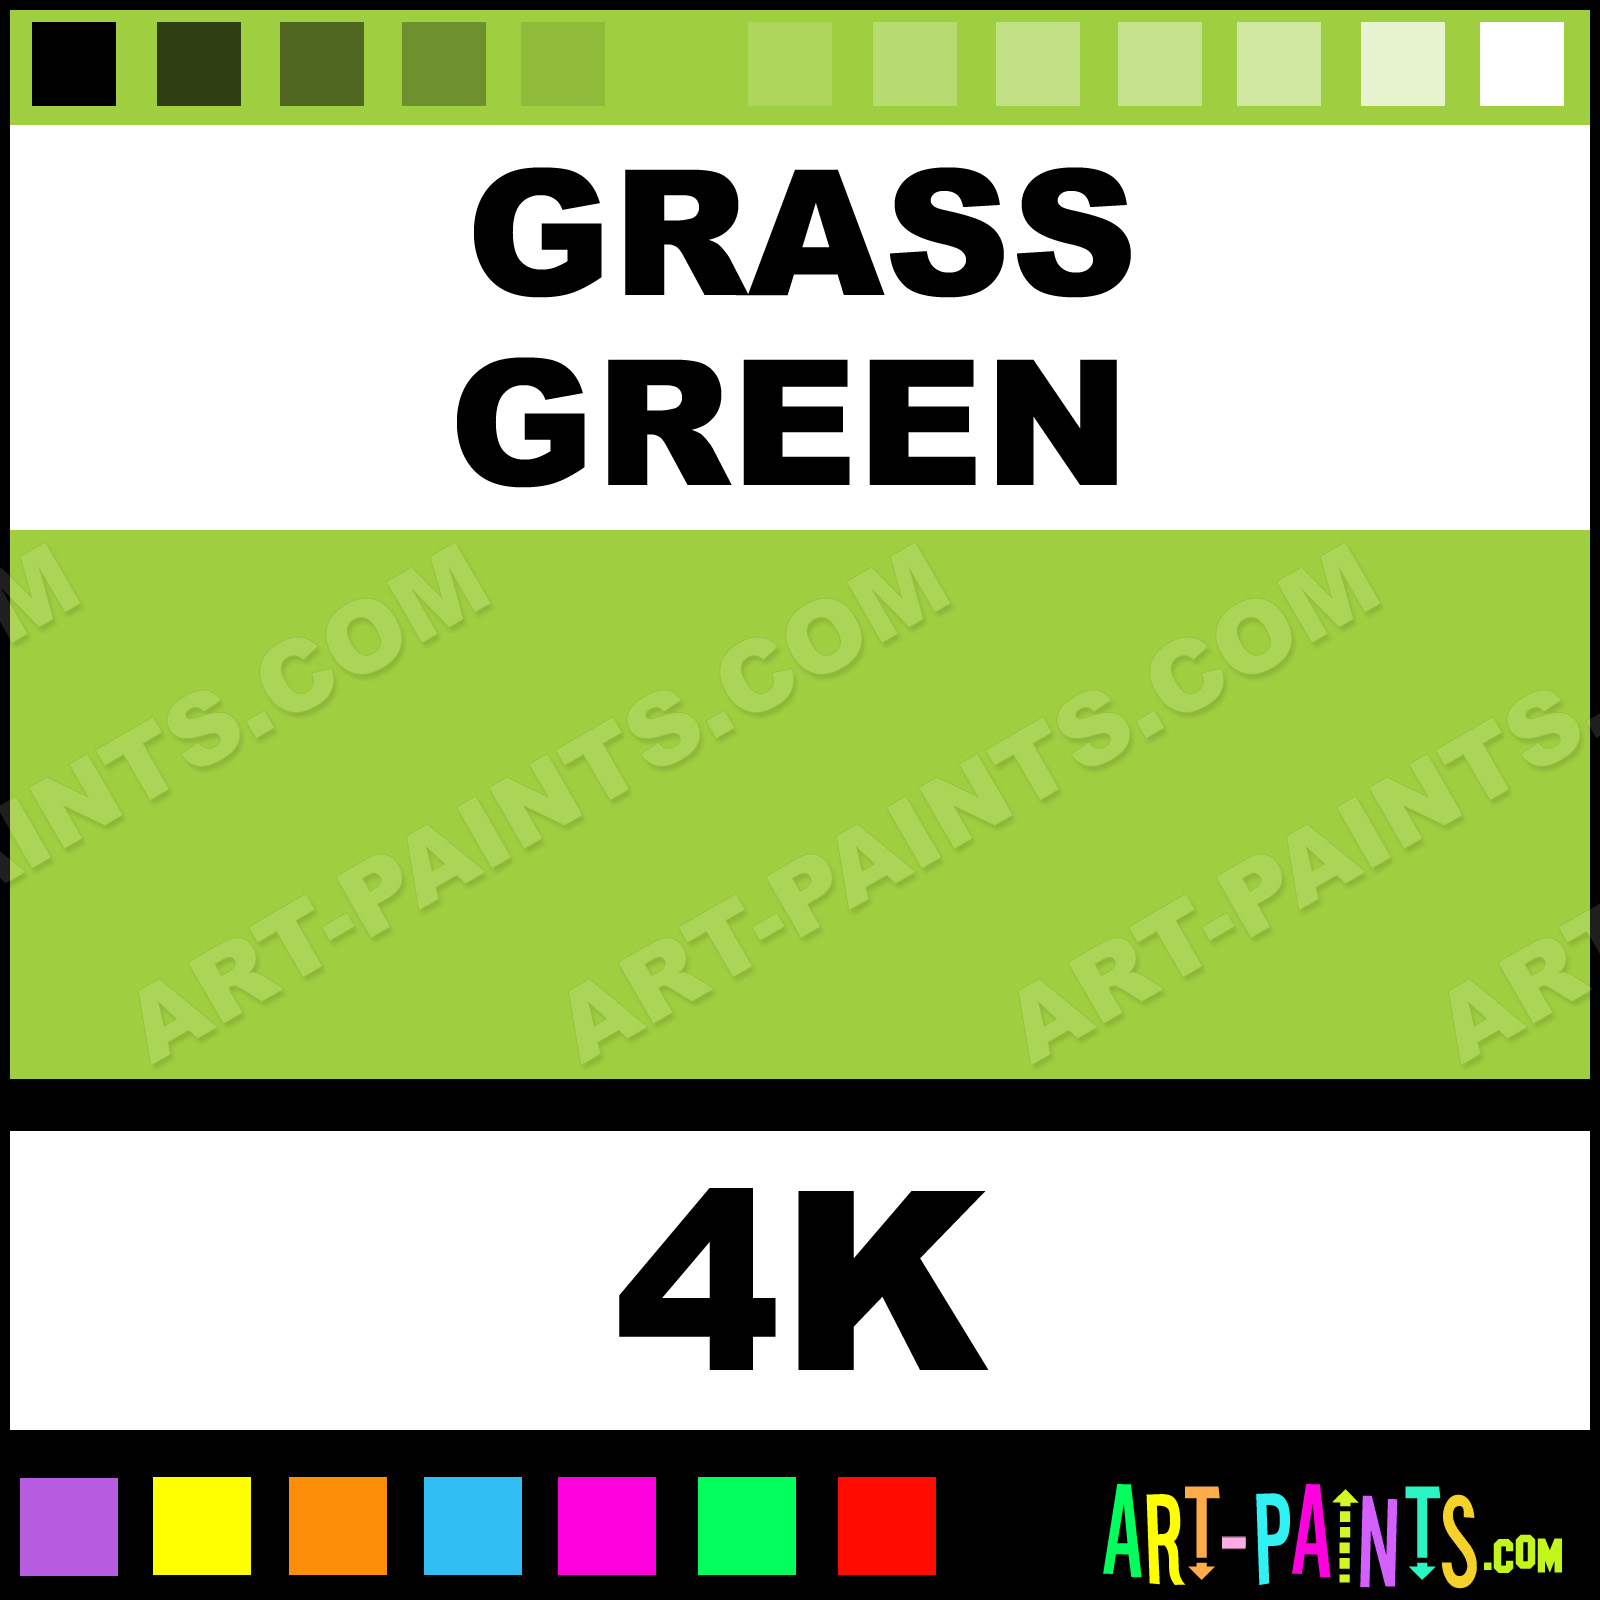 Grass Green Spectralite Airbrush Spray Paints - 4K - Grass Green Paint ...